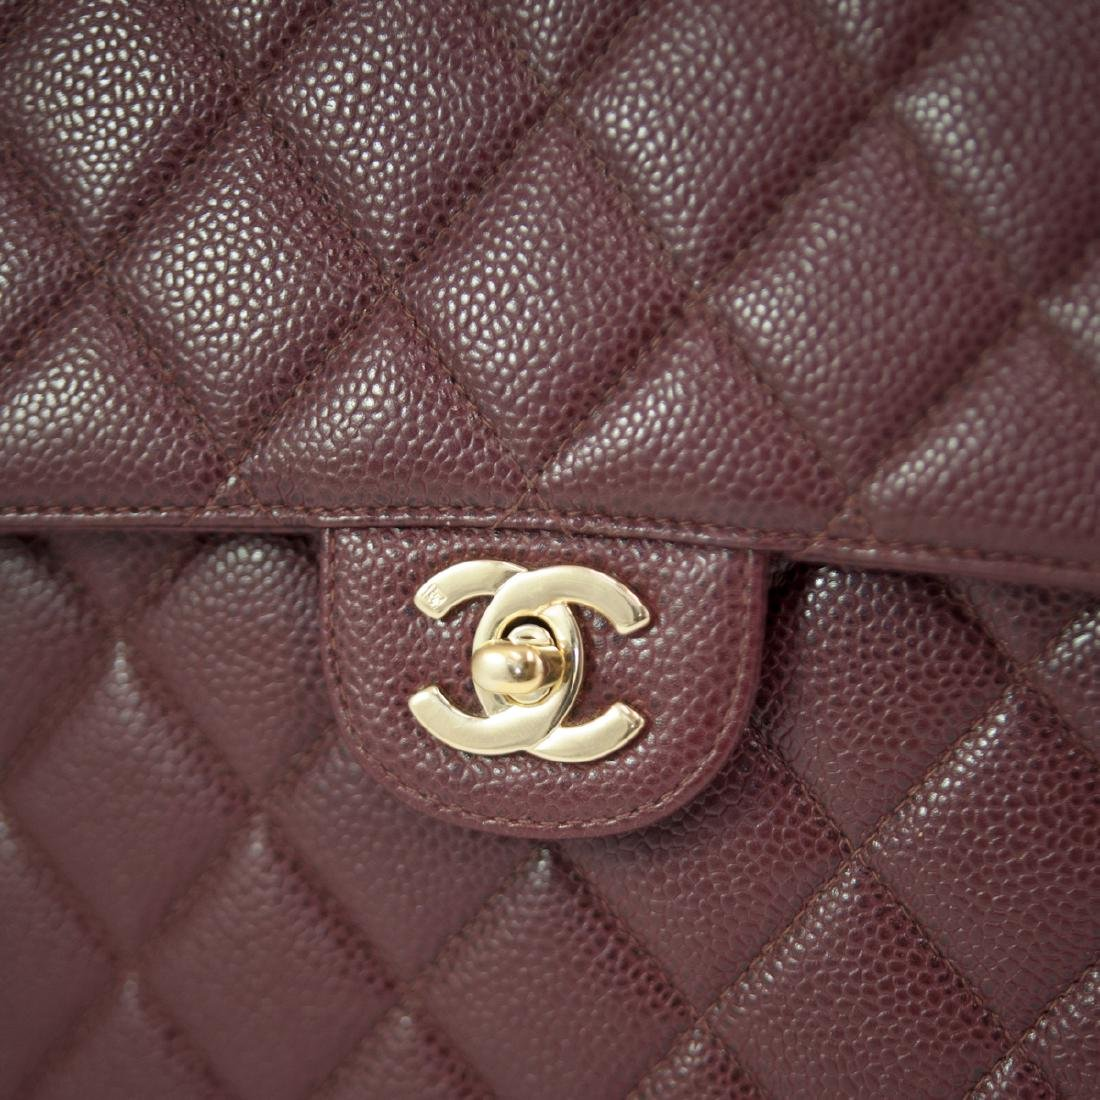 Chanel Caviar Leather Flap Bag - 4